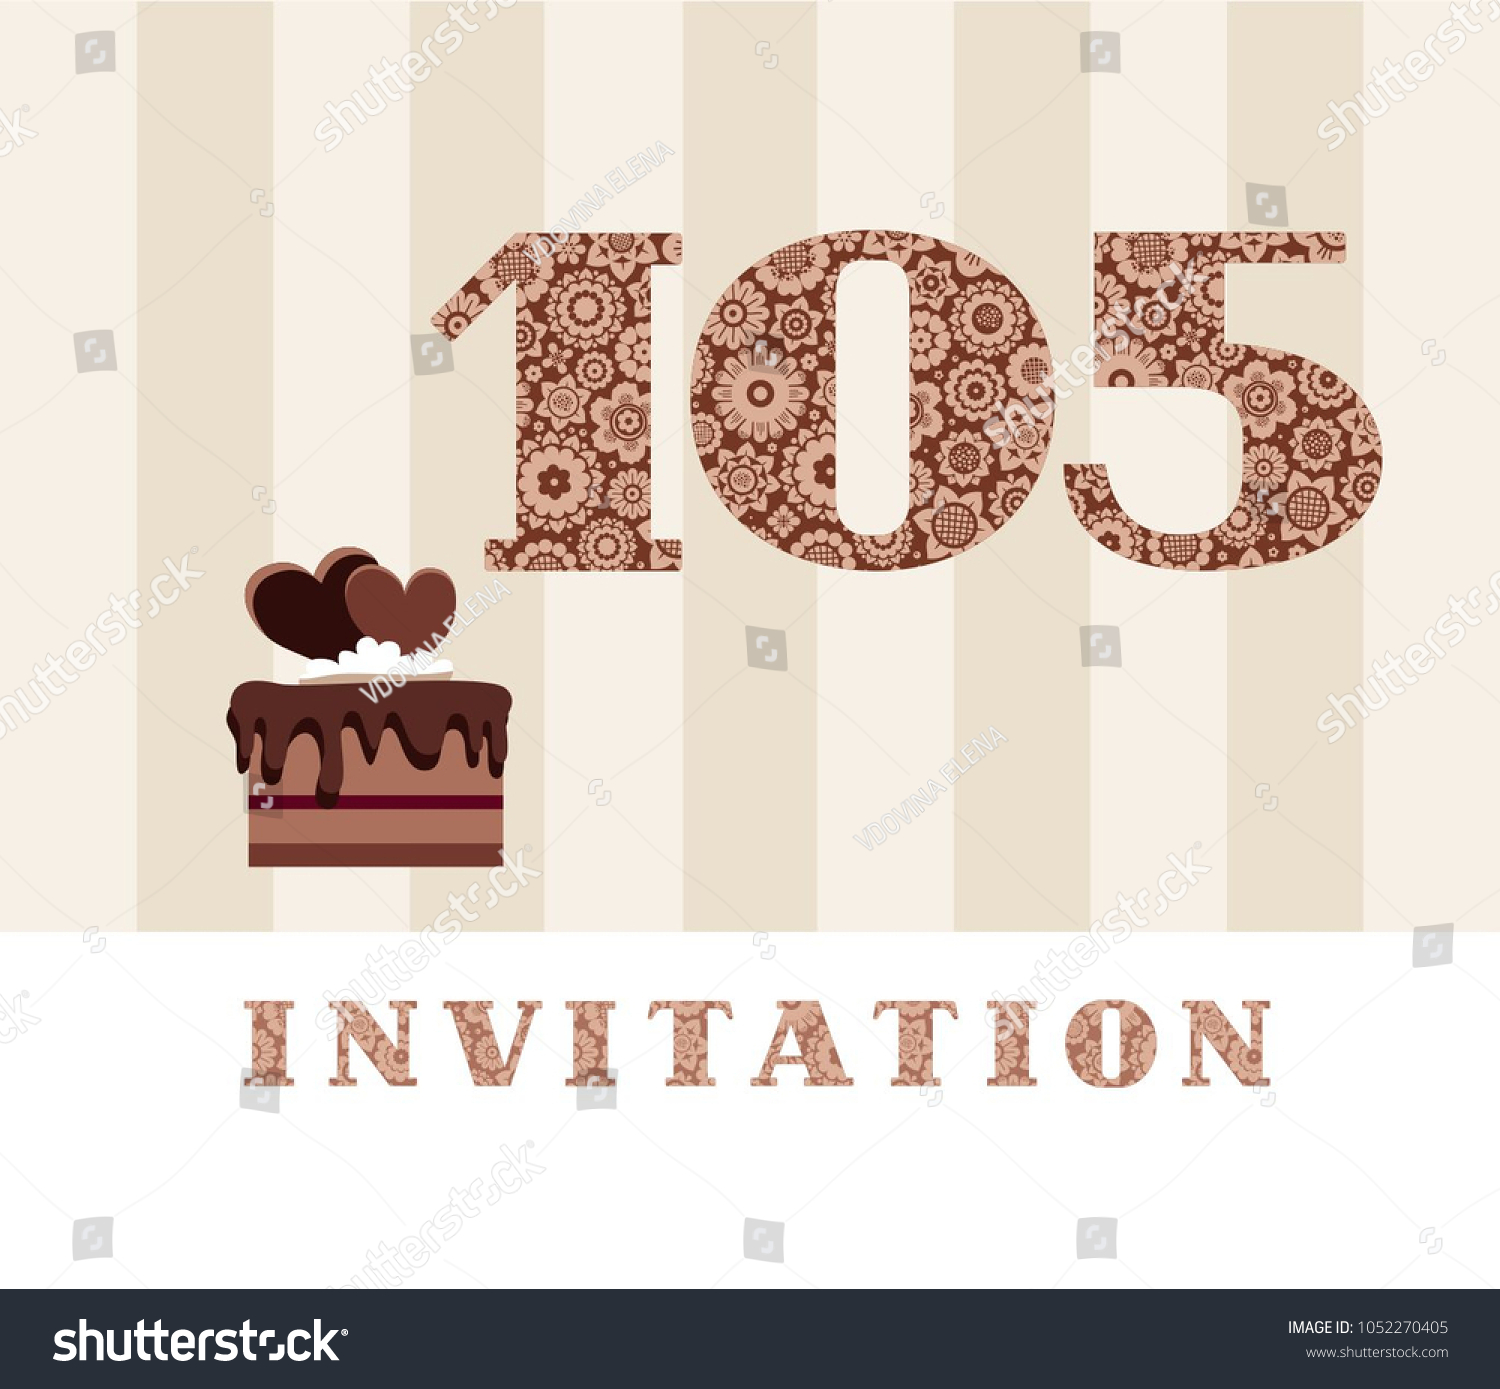 Invitation birthday party wedding anniversary color stock vector the invitation to the birthday party wedding anniversary color card chocolate cake with stopboris